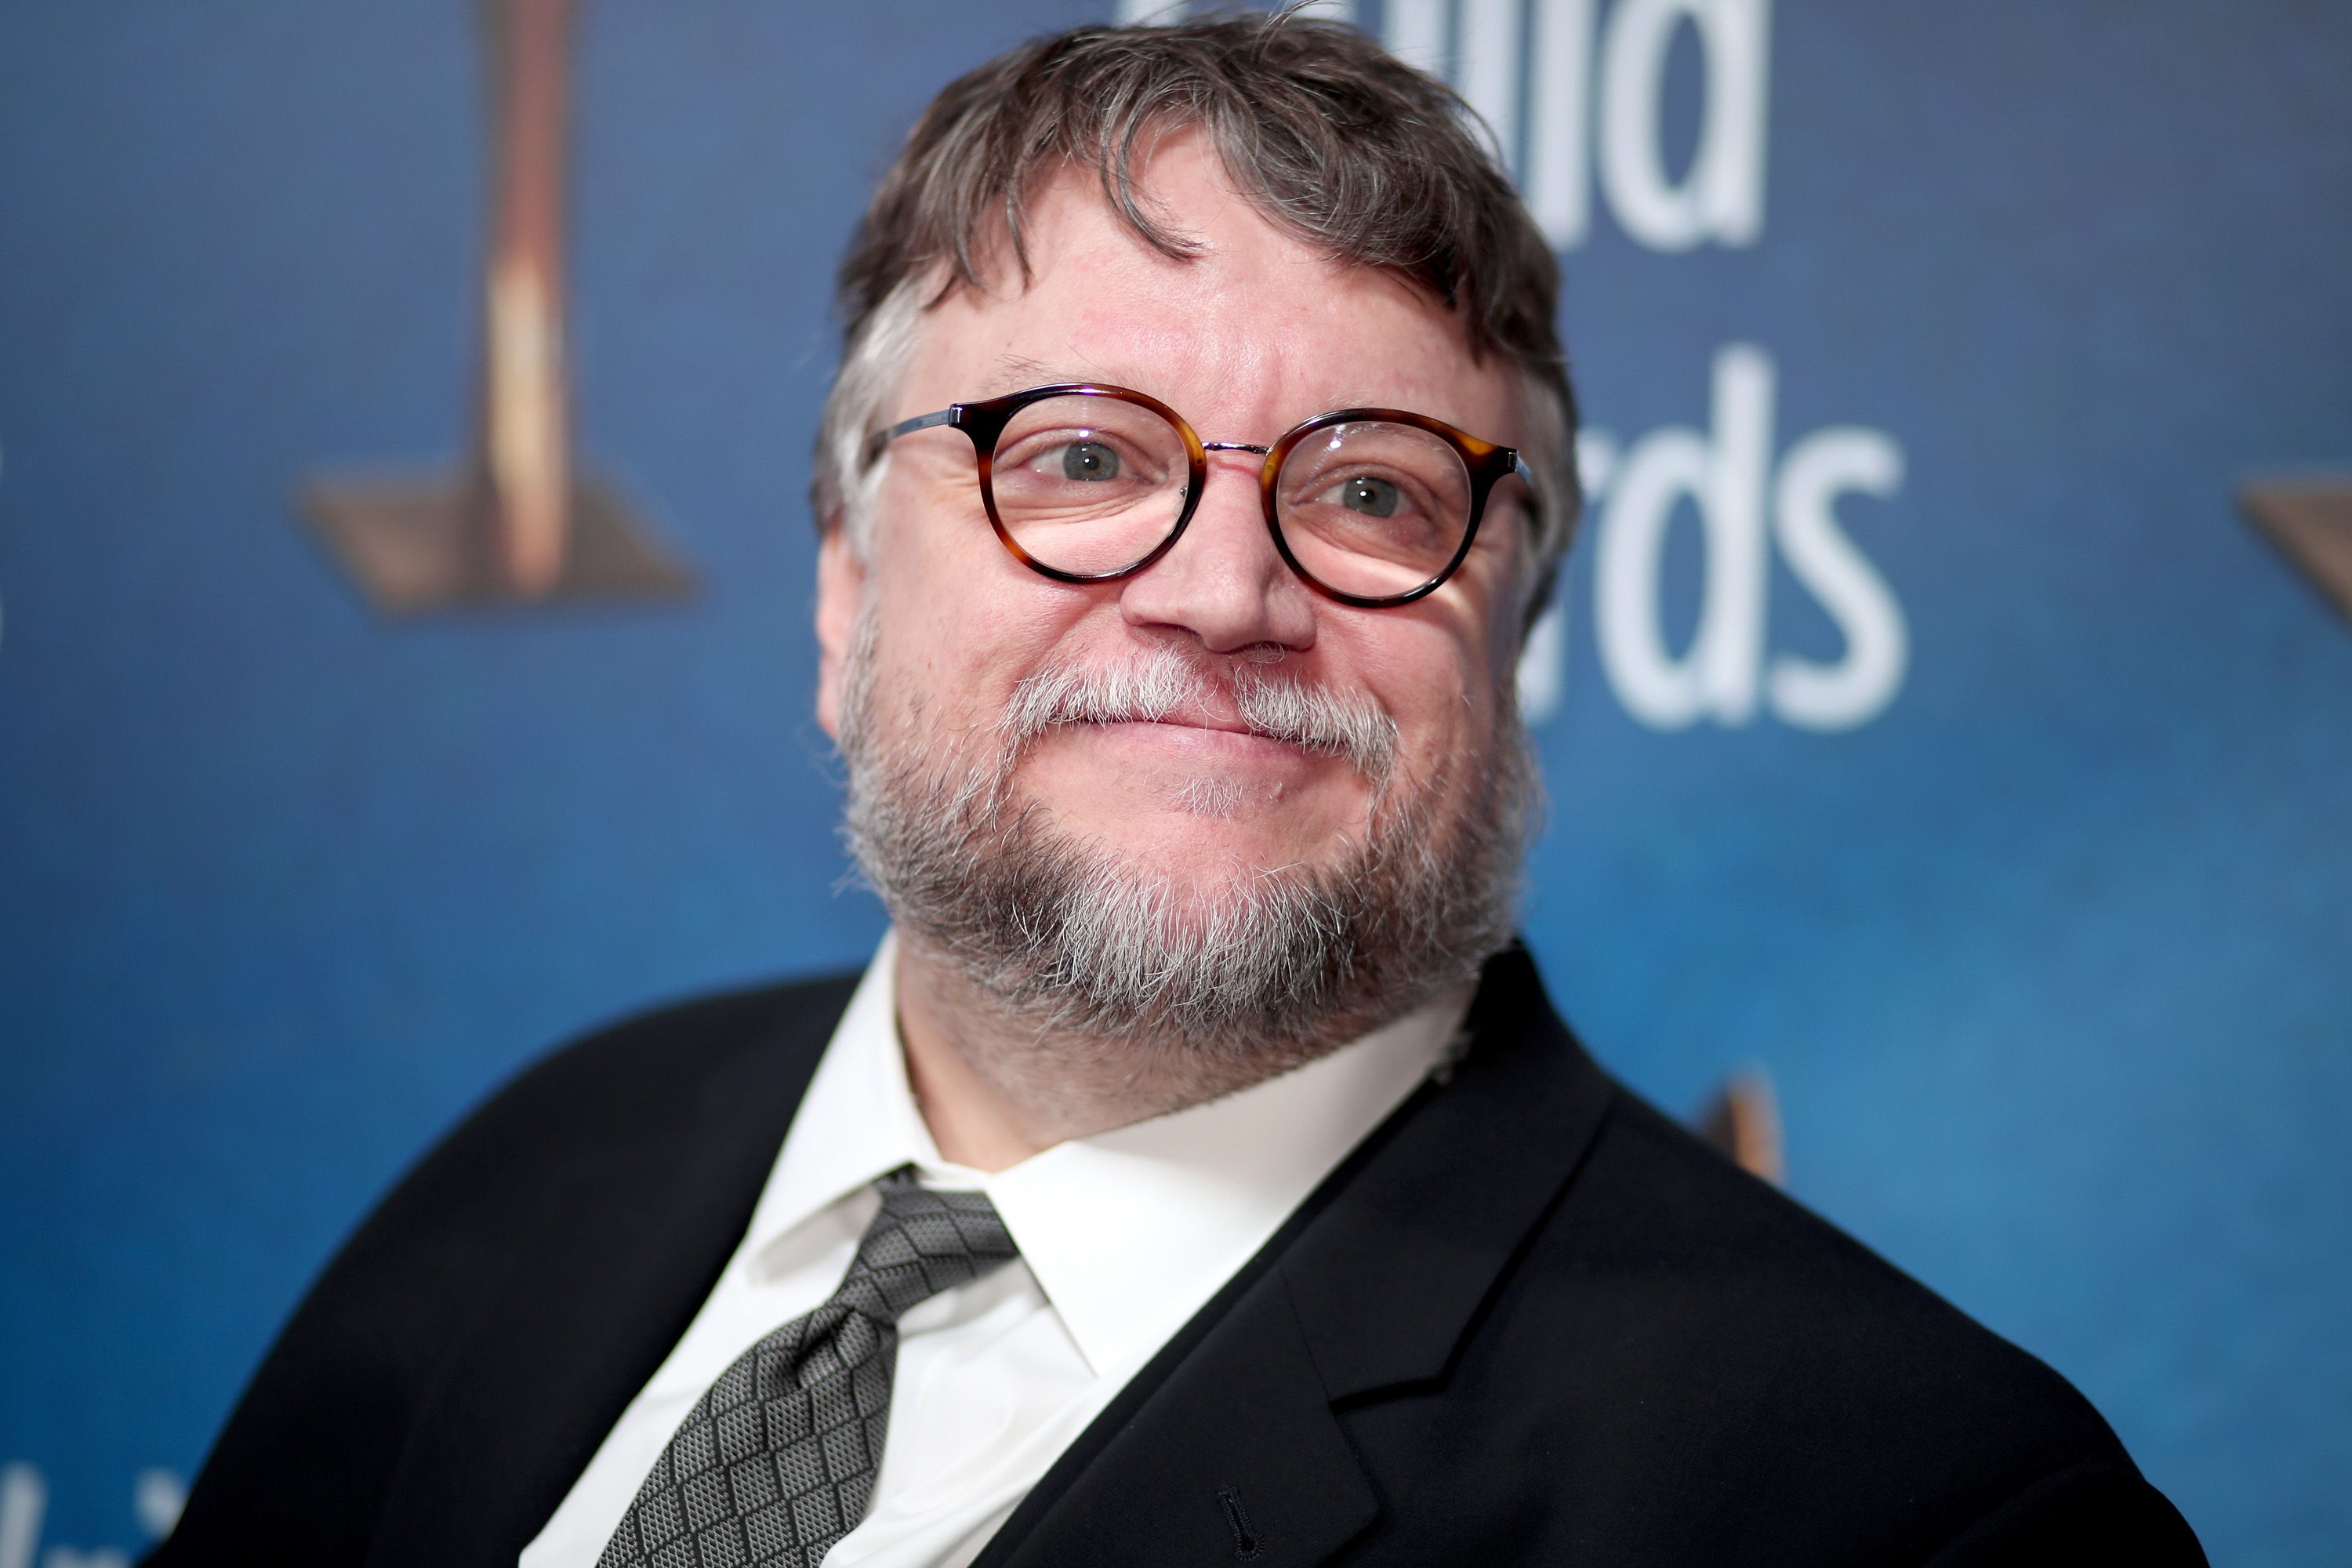 You Can Now Watch a Guillermo del Toro Movie Inside a Guillermo del Toro Theater